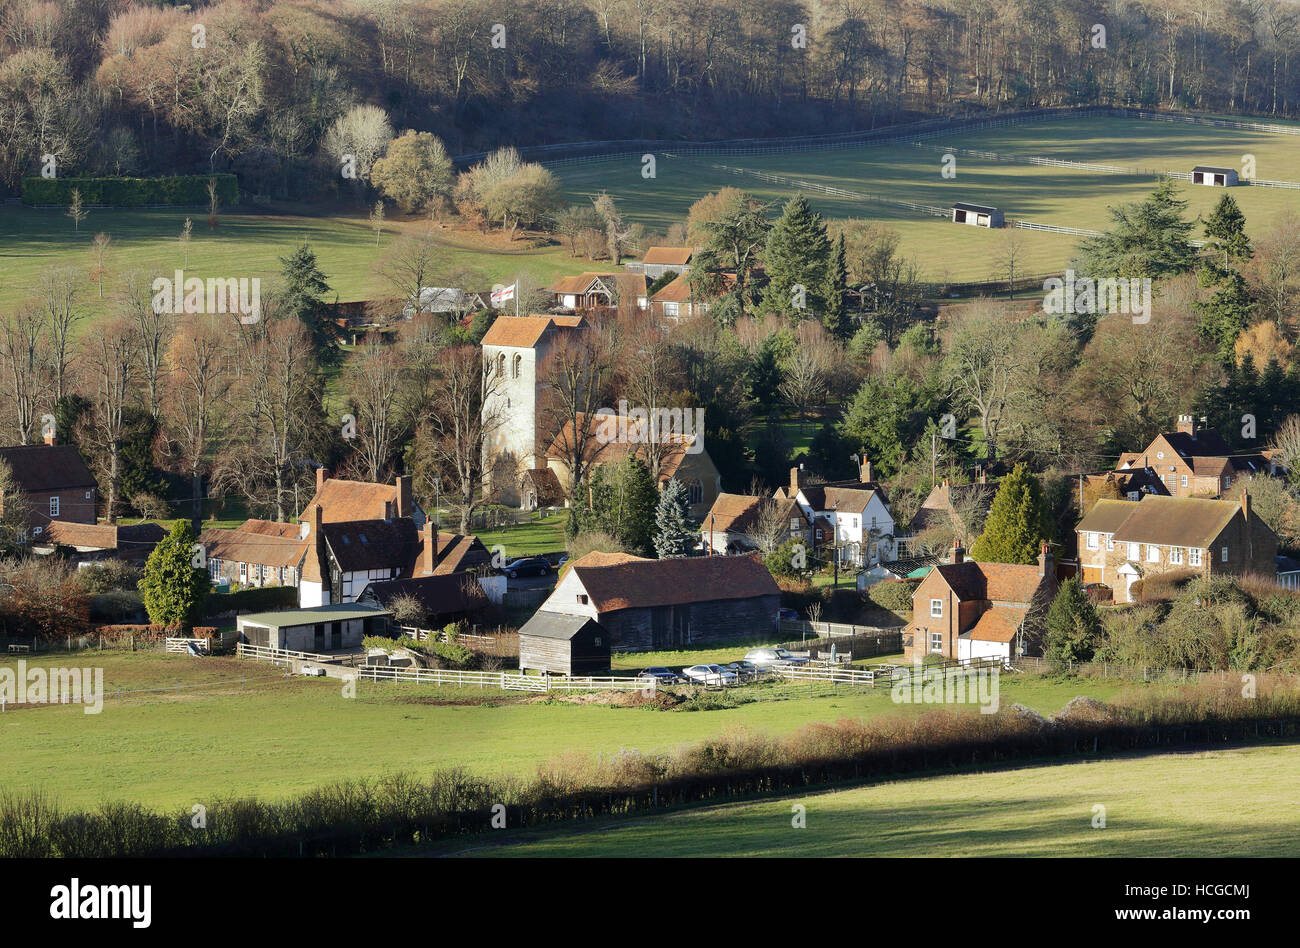 English Landscape overlooking the Hamlet of Fingest in the Chiltern Hills - Stock Image